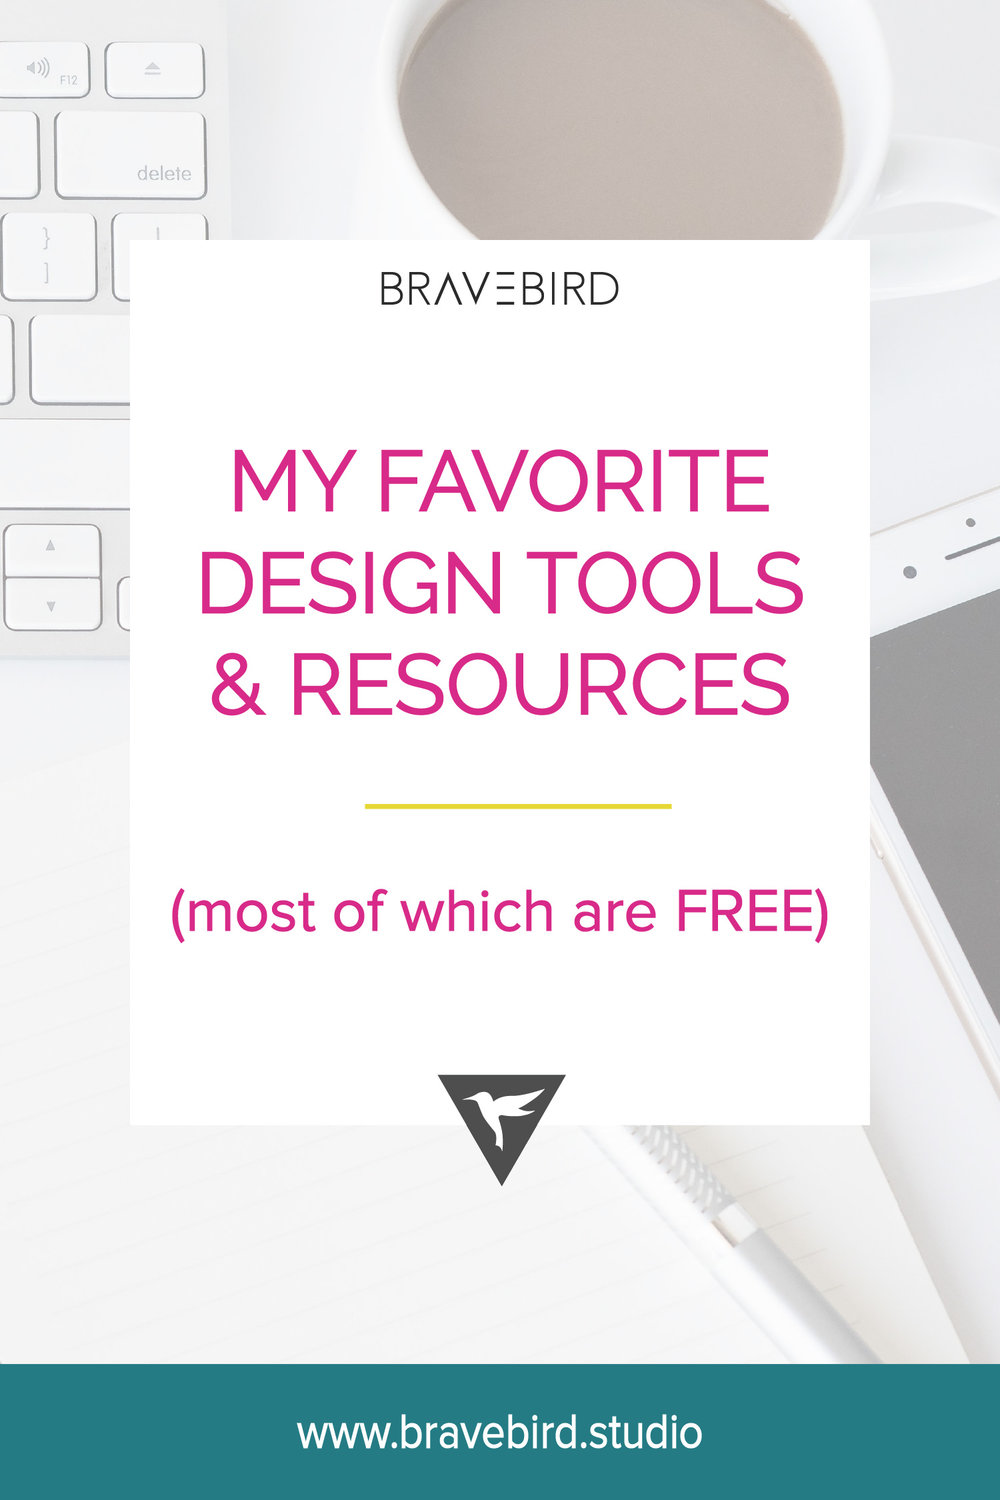 My favorite design tools & resources | Bravebird Studio